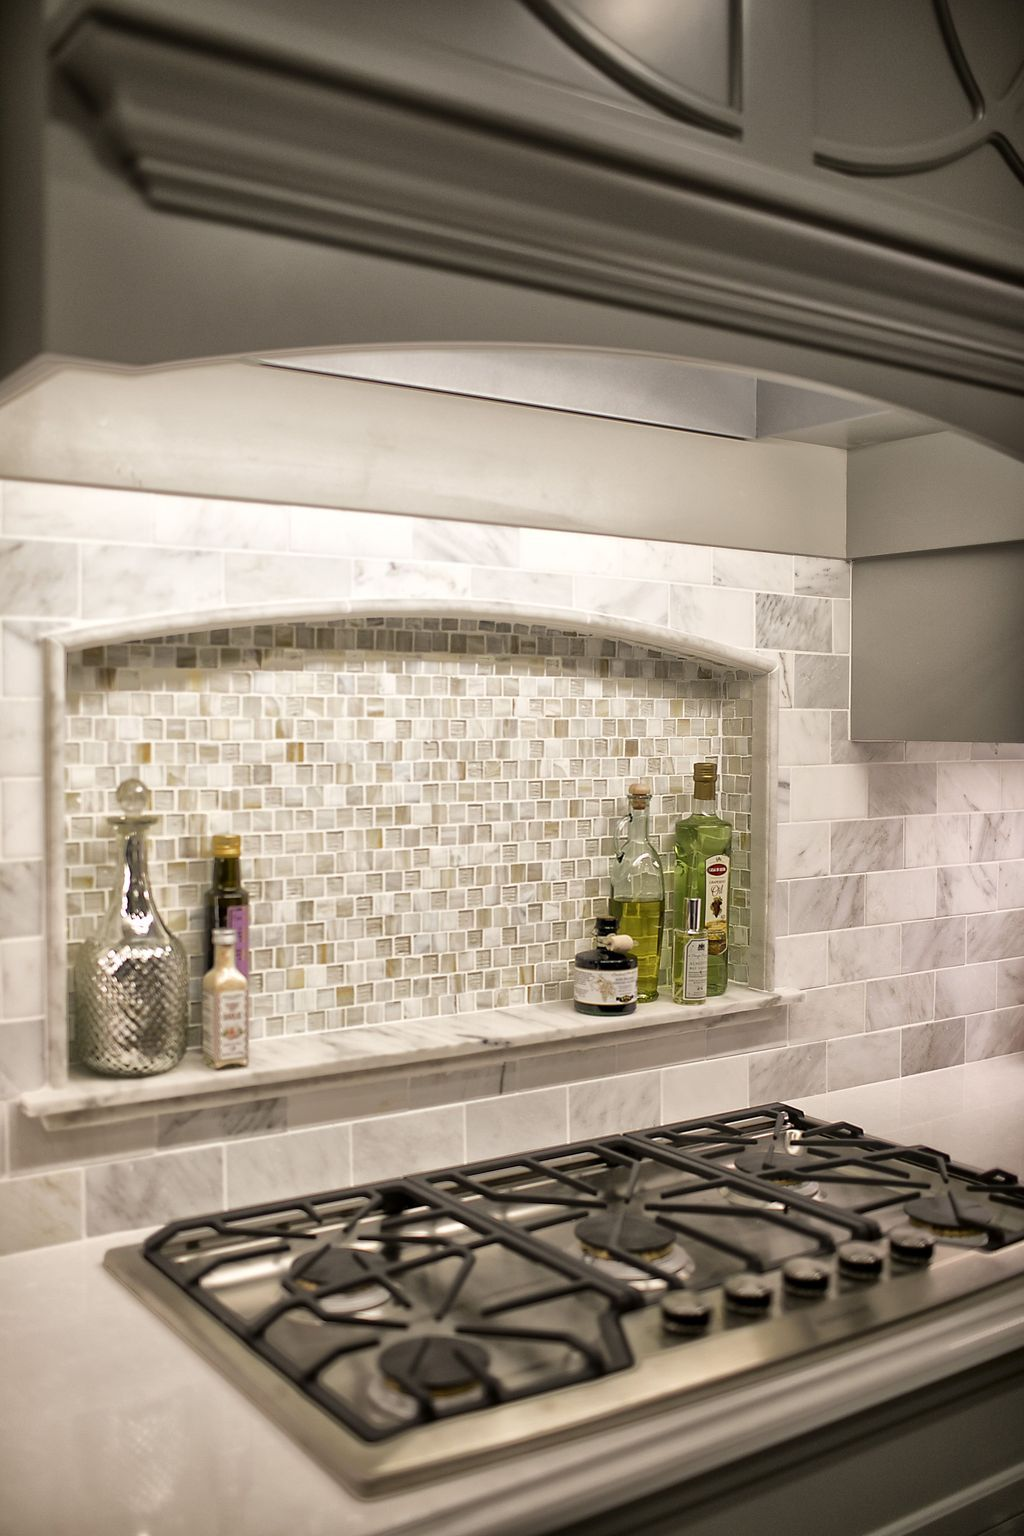 Pin By Diana Jennings On Backsplash In 2019 Kitchen Backsplash